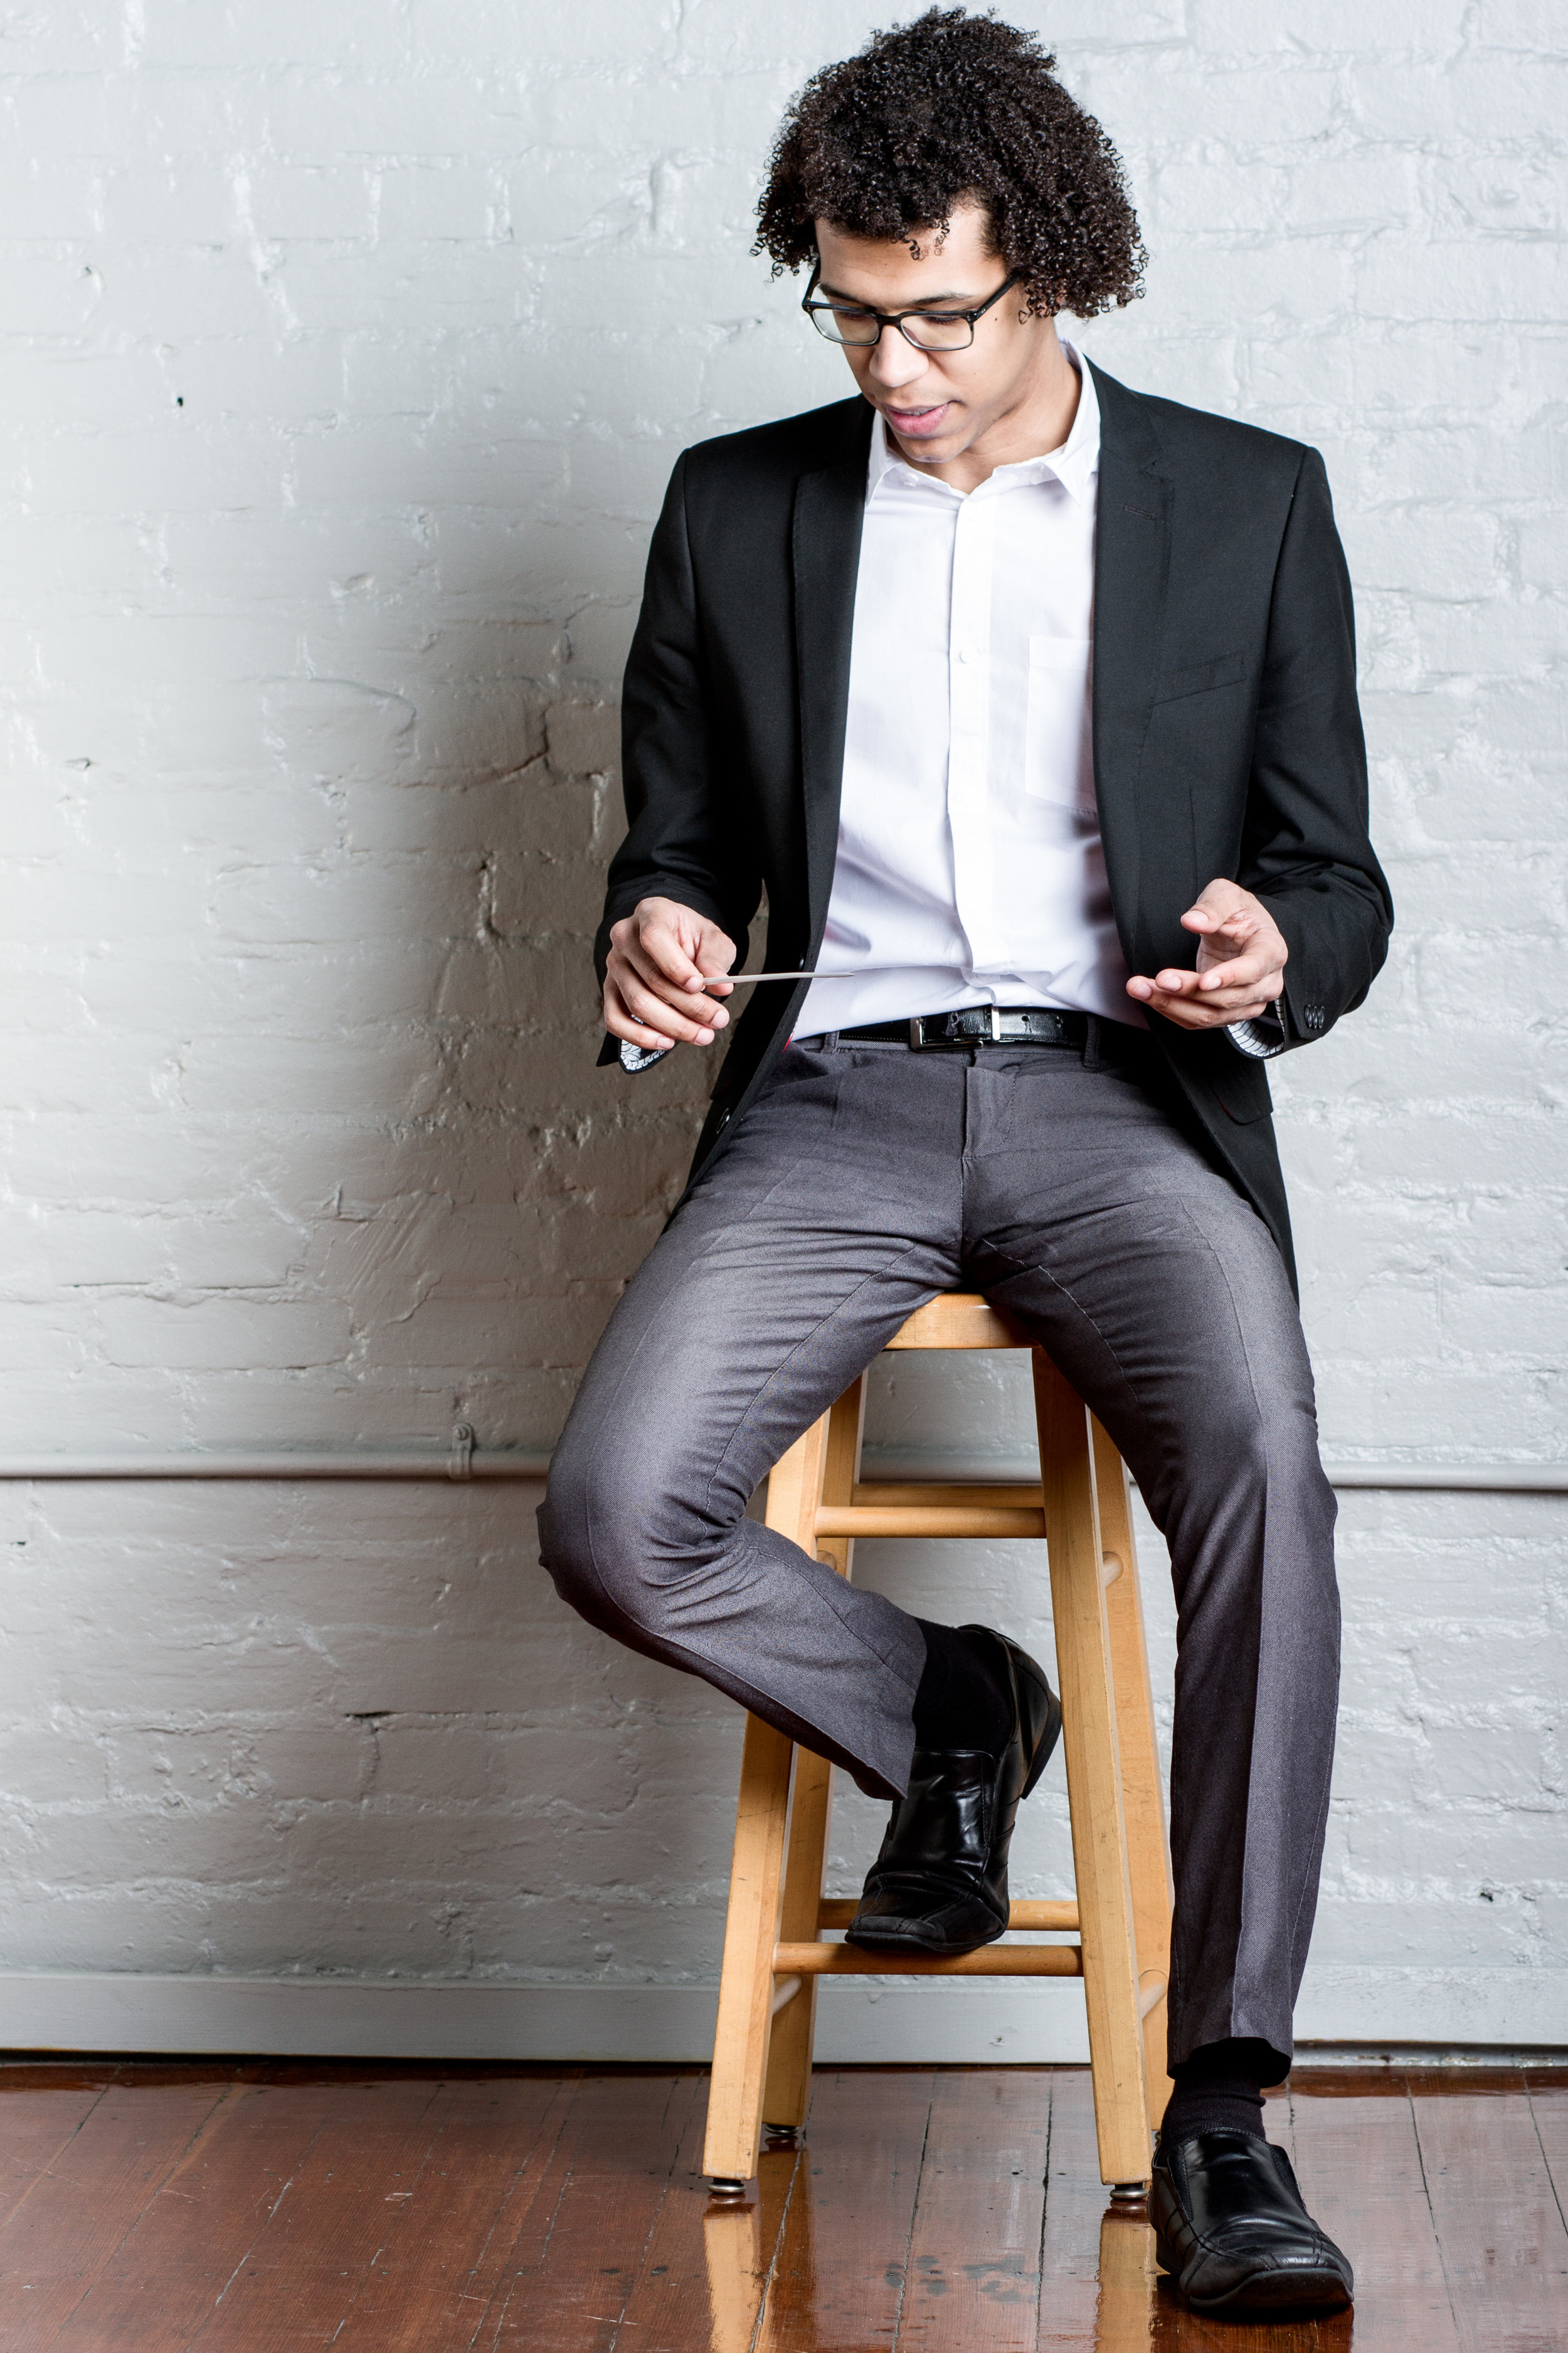 Jonathon Heyward conductor on stool looking down.jpg